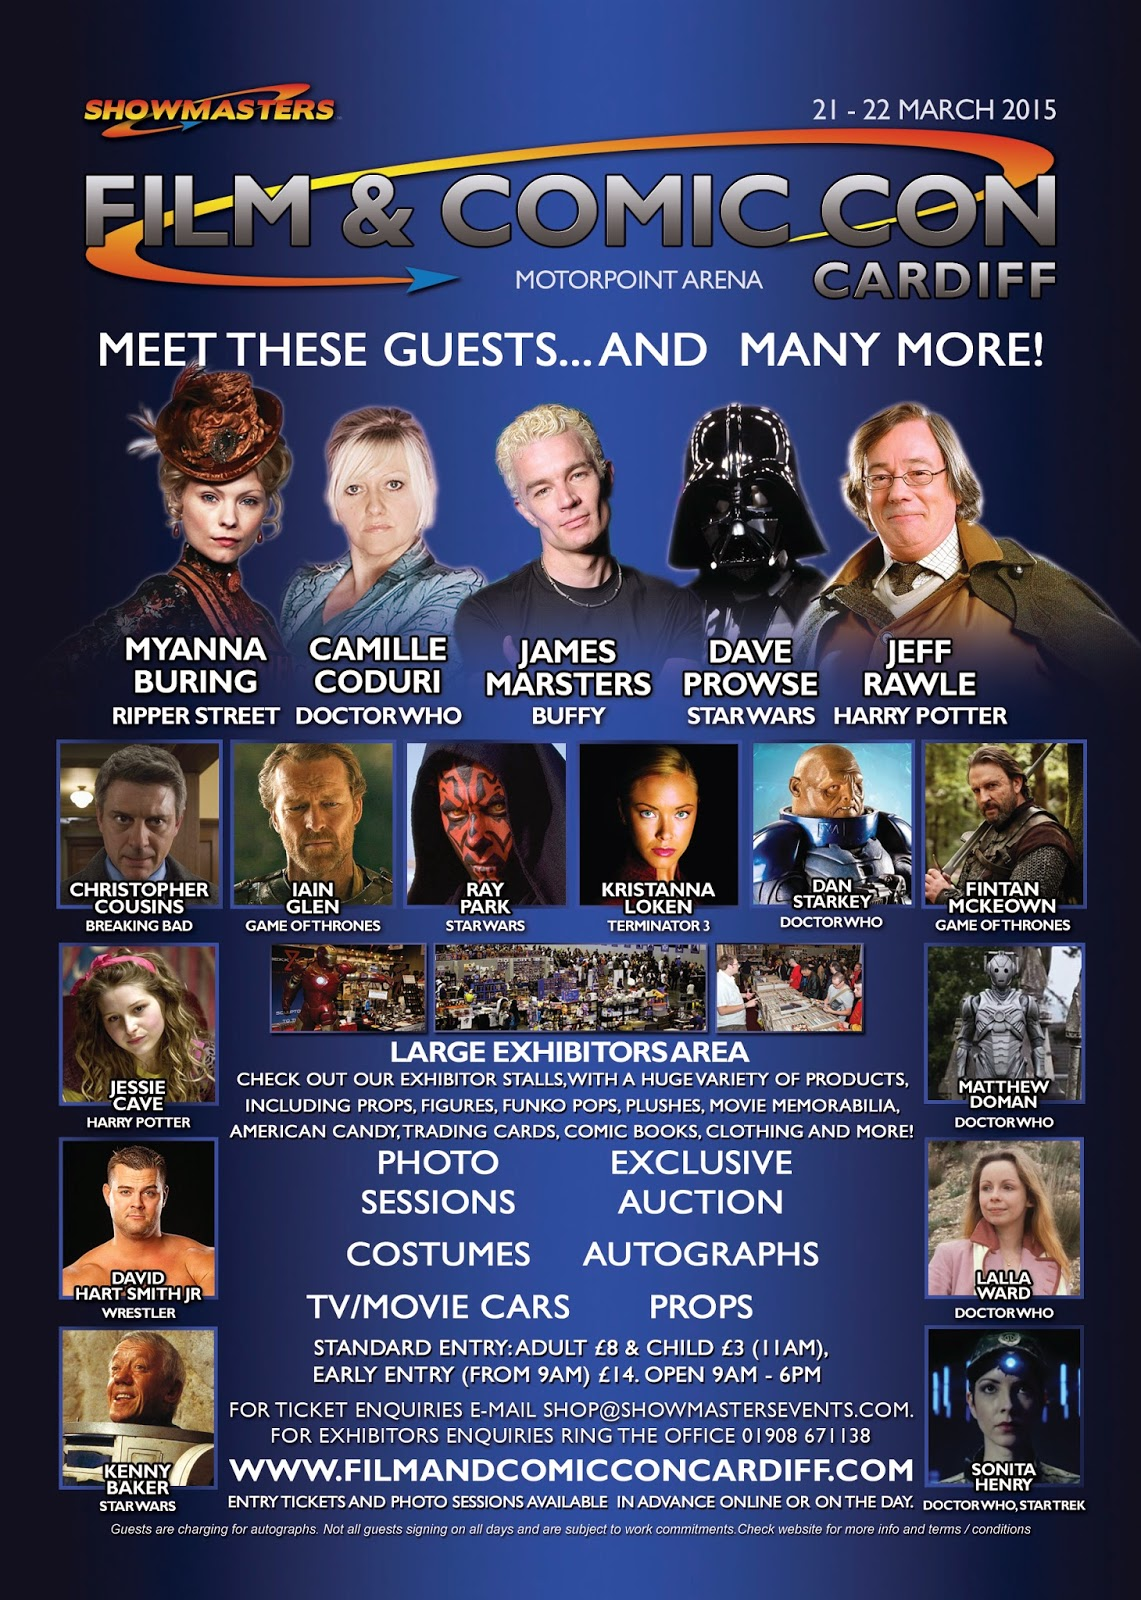 cardiff film and comic con